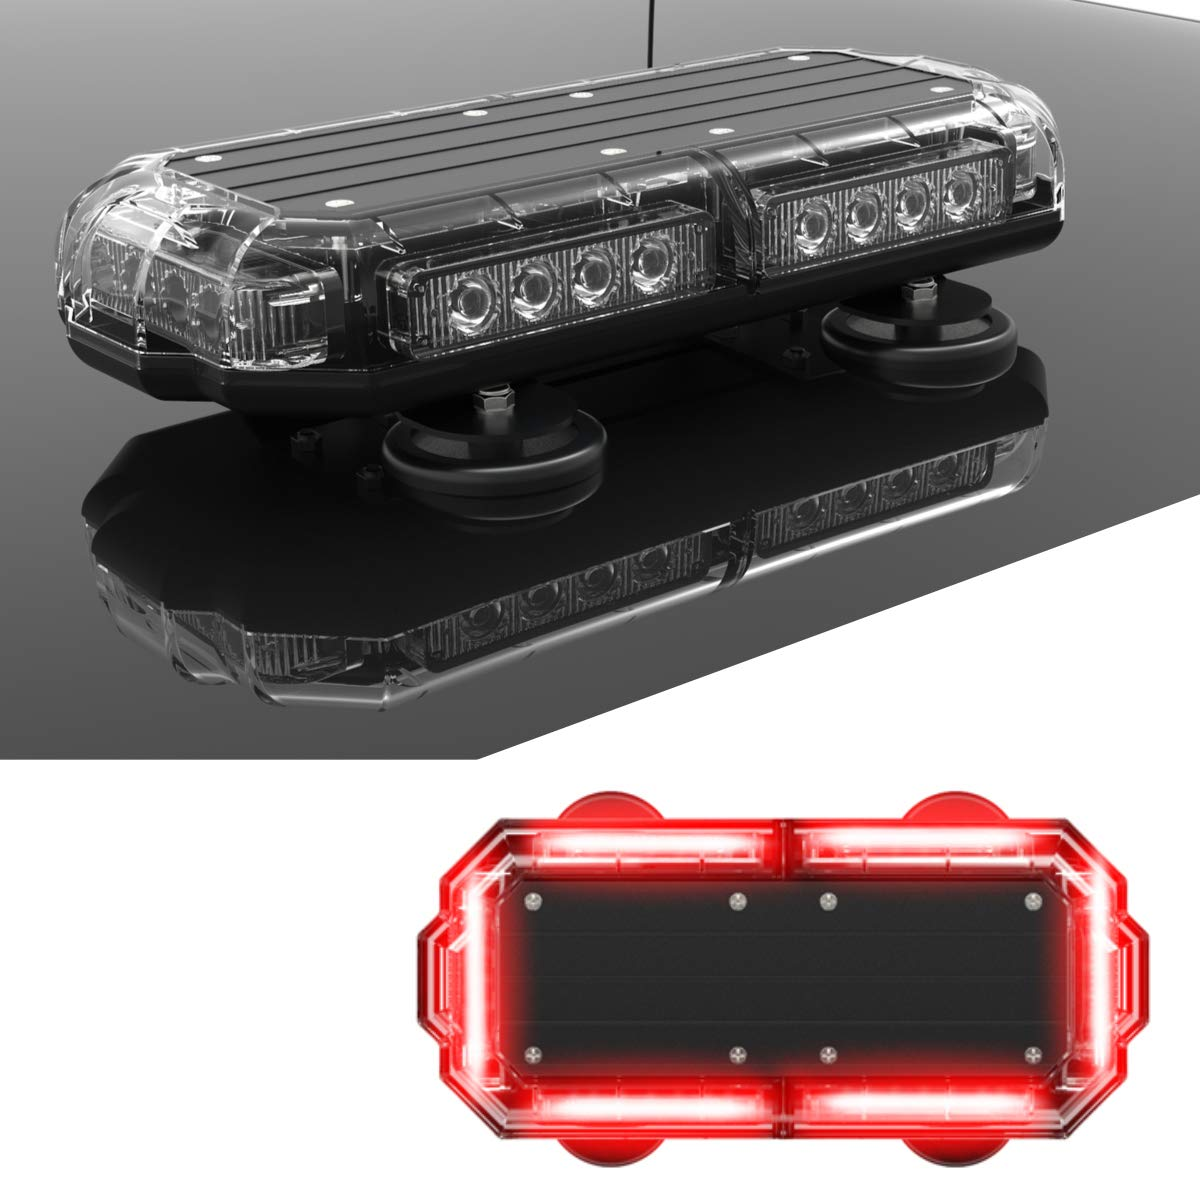 SpeedTech Lights Mini 14'' 72 Watts LED Strobe Lights for Trucks, Cars, Plows, and Emergency Vehicles with Magnetic Roof Mount in Red/Red